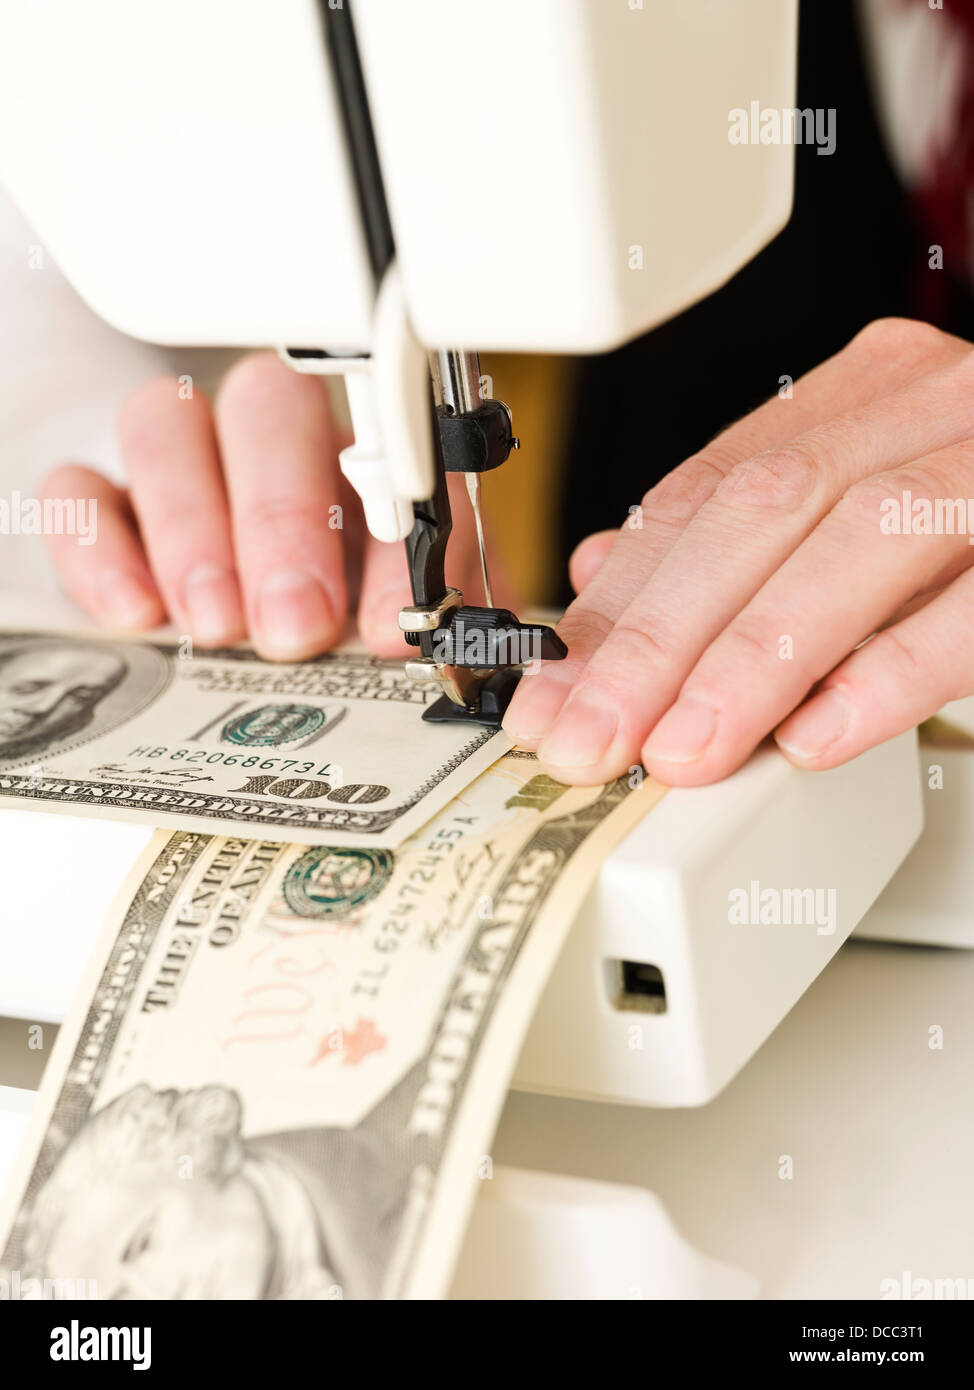 Sewing a dollar bank note - Stock Image